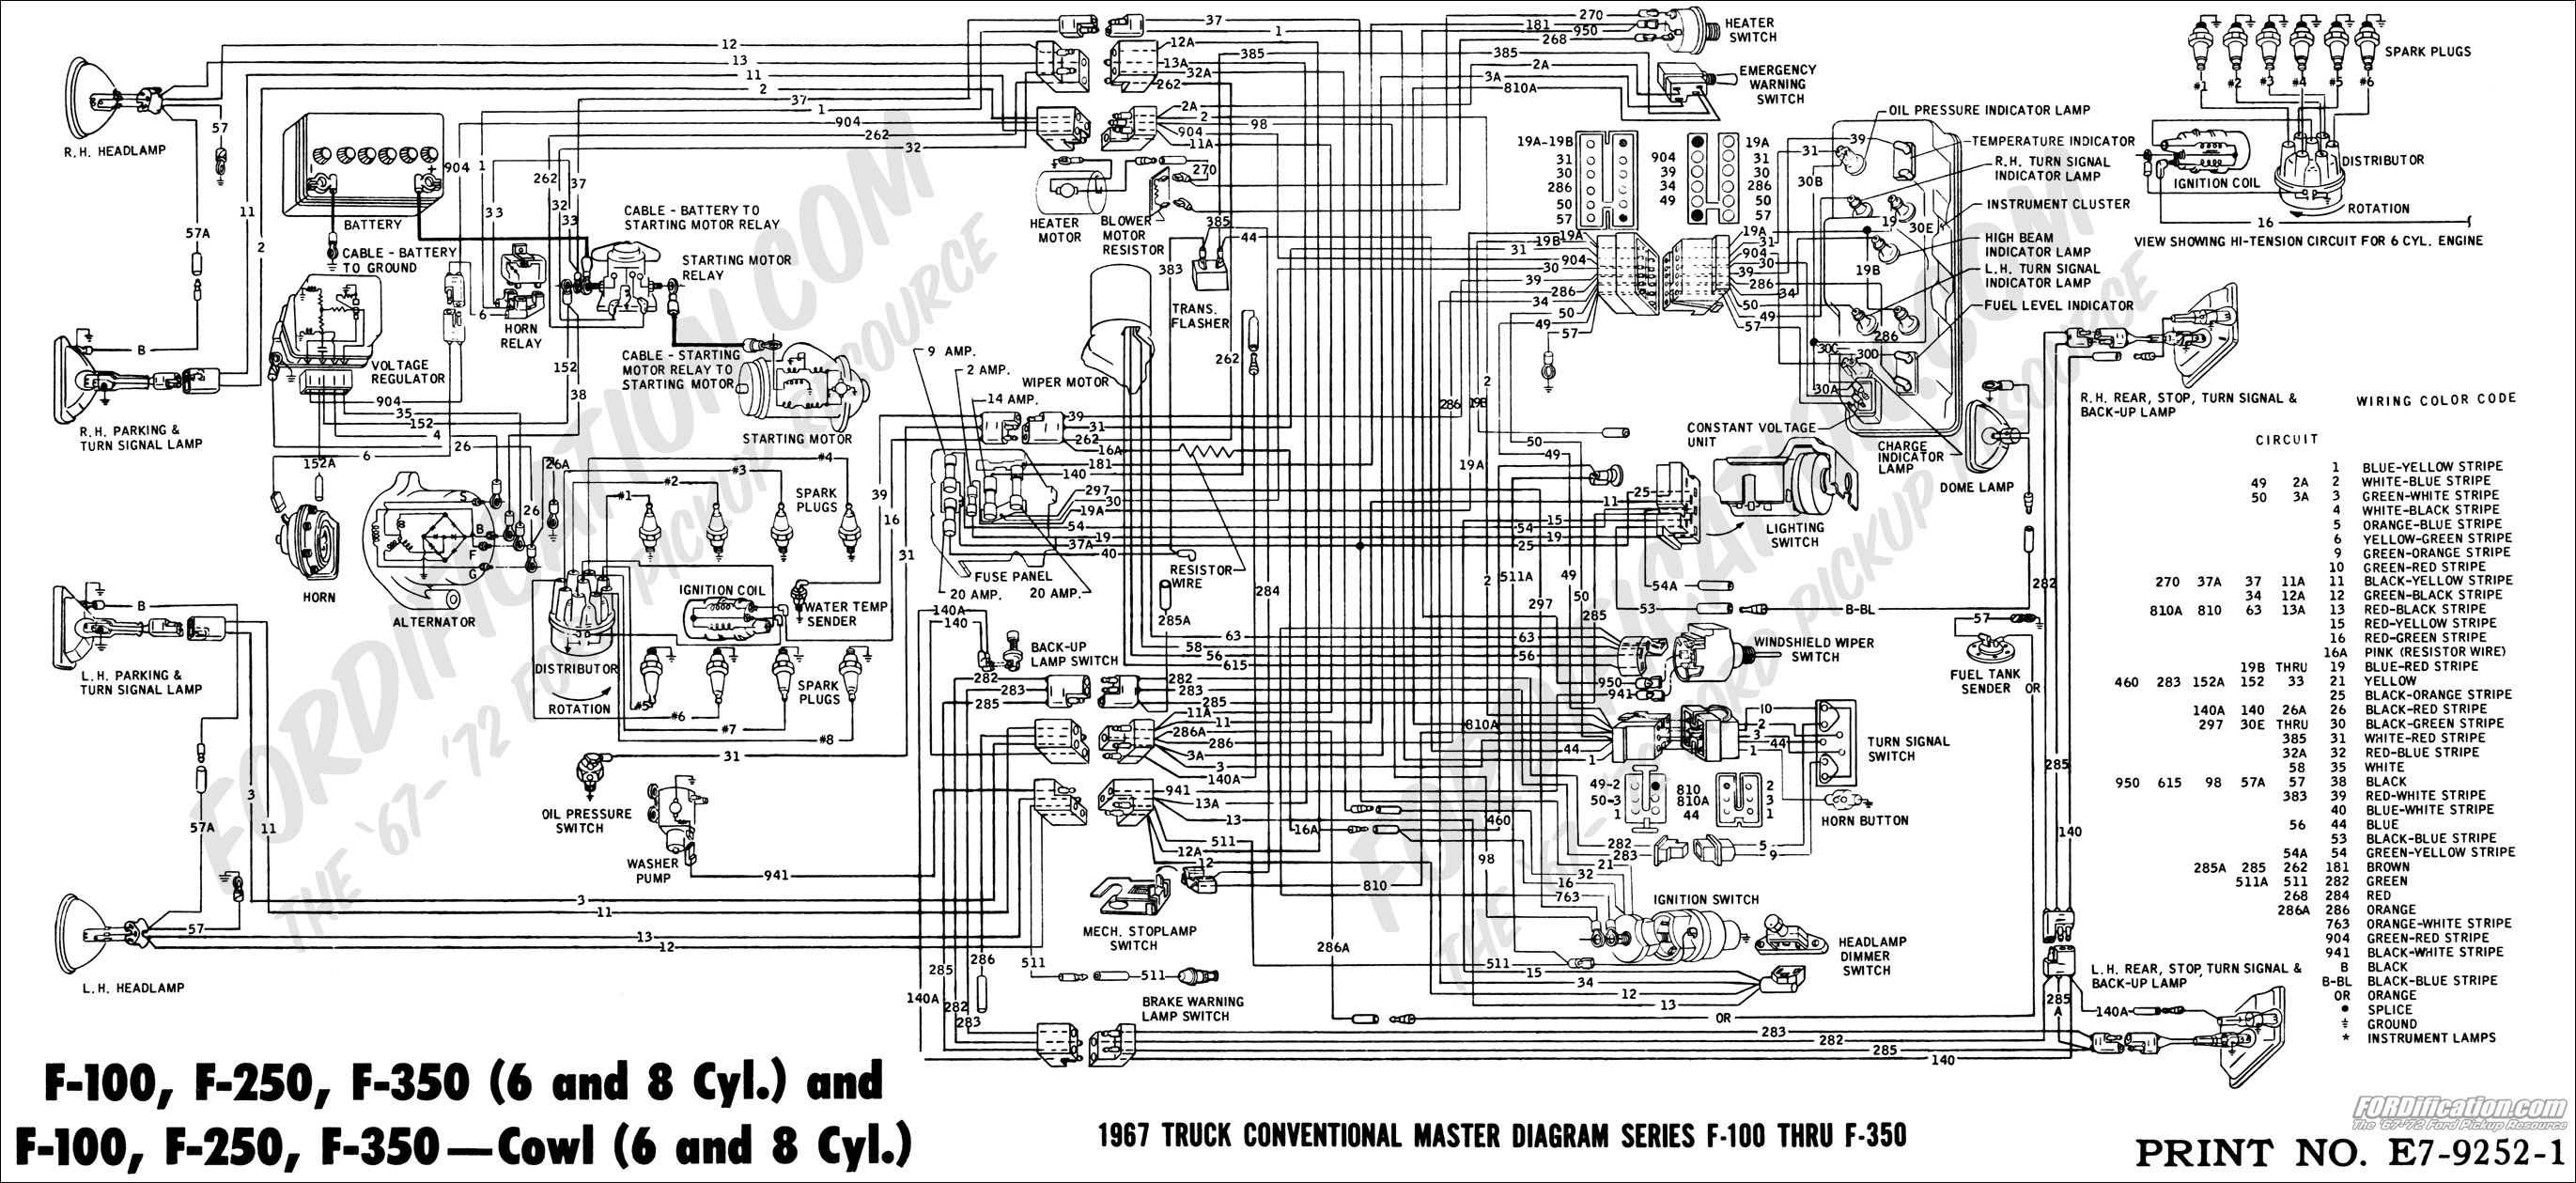 2013 Ford F 350 Wiring Diagram Pictures 1979 Gmc Truck Diagrams Schematics Rh Mychampagnedaze Com 1985